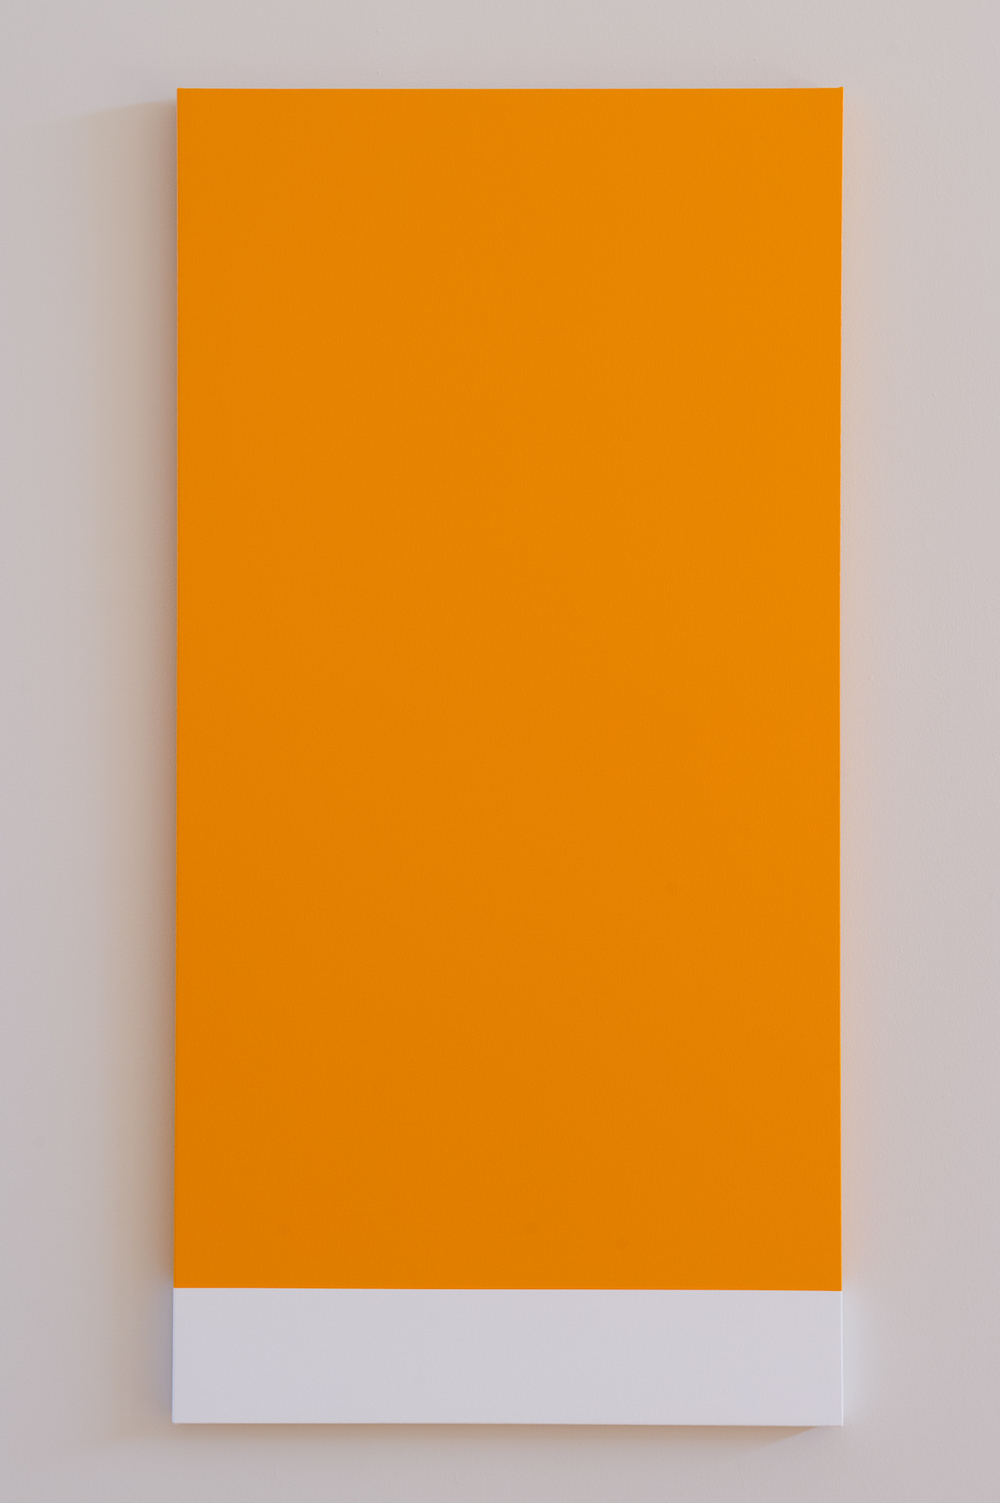 Orange Rectangle, 14-1159 (after Kelly)